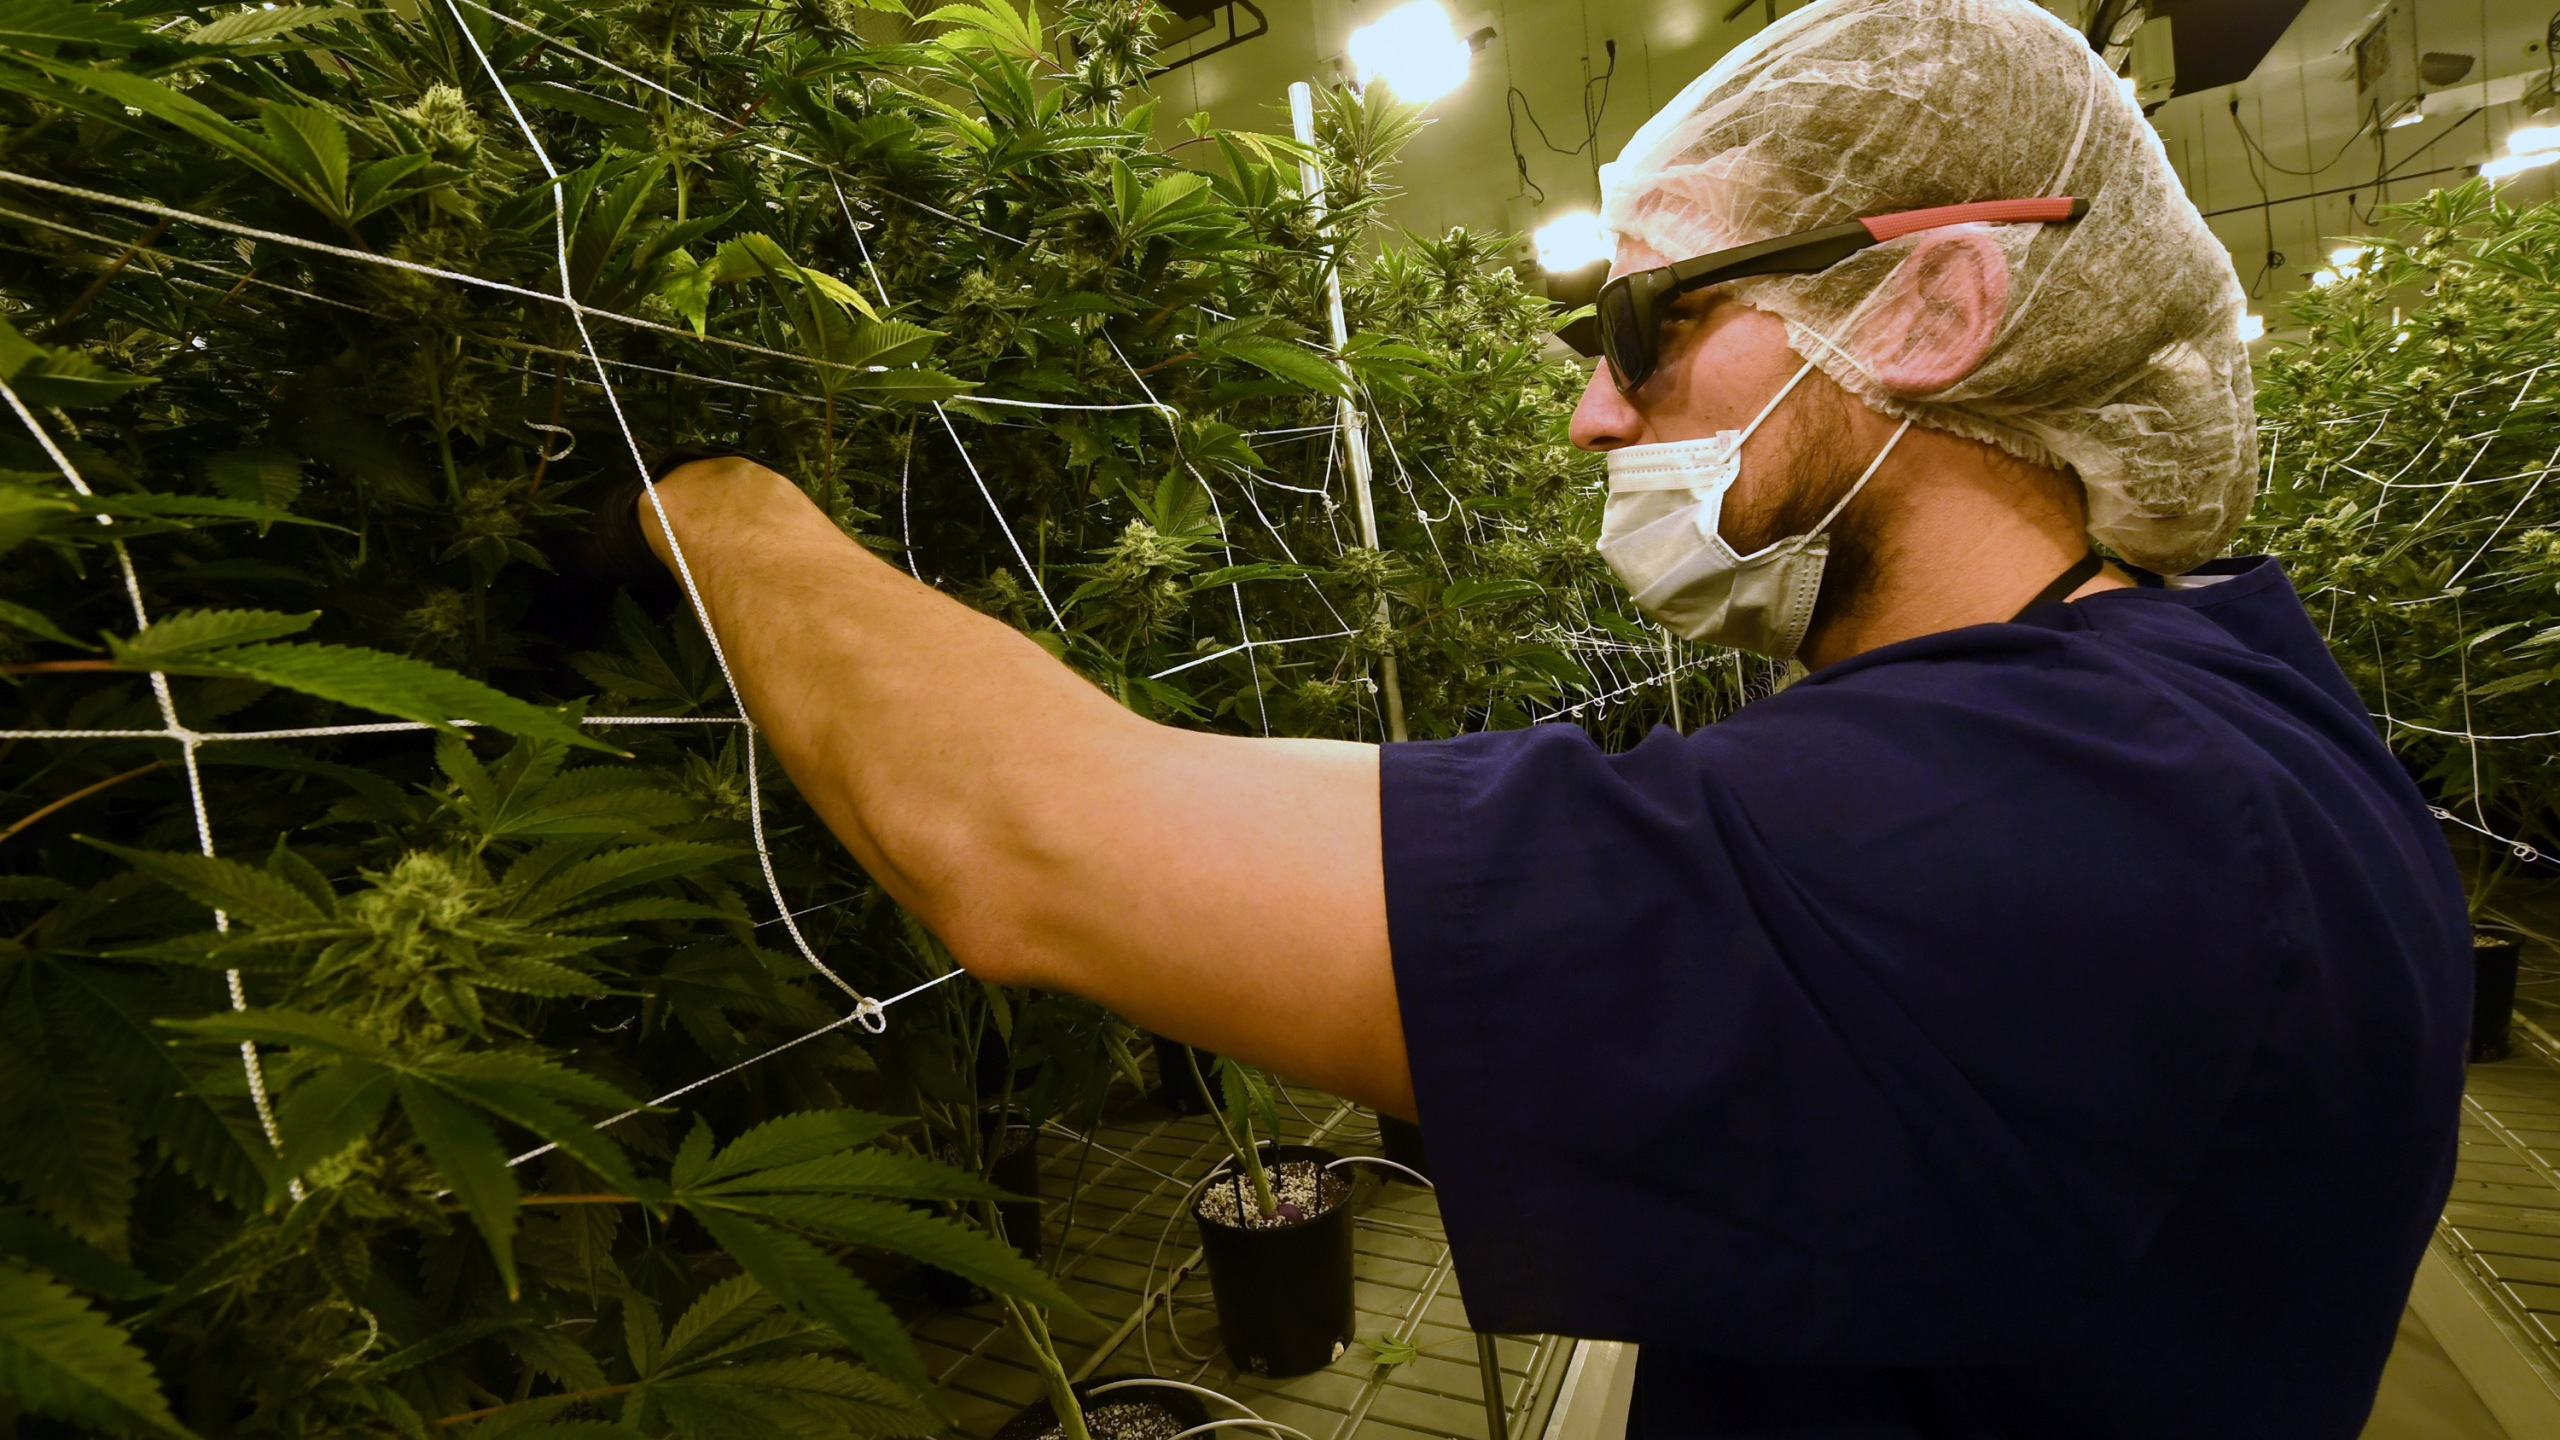 David Burr demonstrates removing leaves on marijuana plants to allow more light for growth at Essence Vegas' 54,000-square-foot marijuana cultivation facility on July 6, 2017, in Las Vegas, Nevada. (Credit: Ethan Miller / Getty Images)